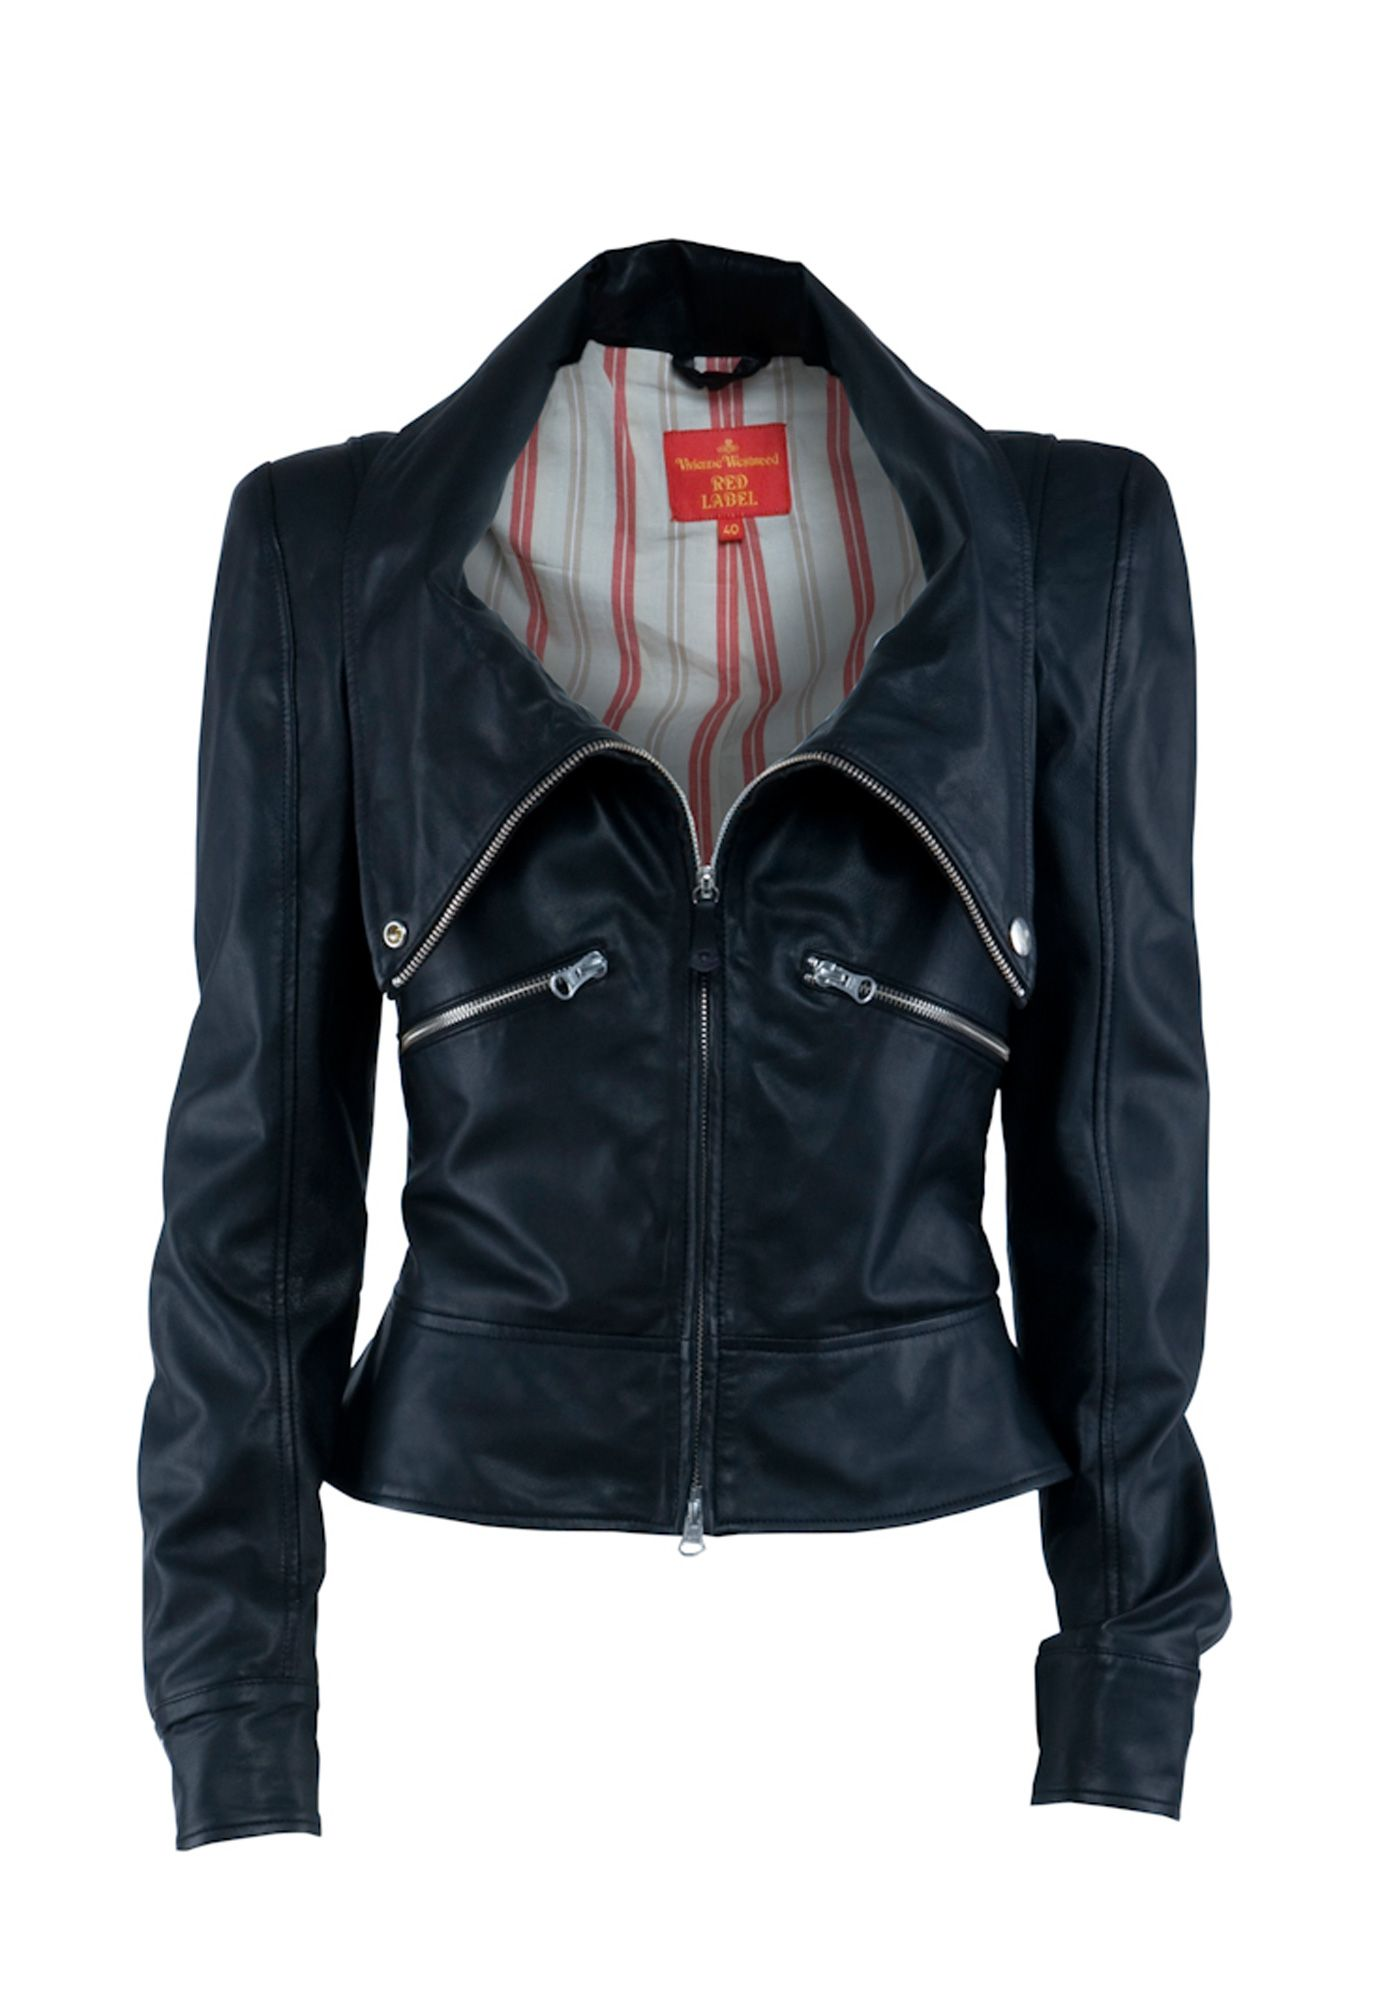 793d9630380 little black leather jacket by Vivienne Westwood. oh my goodness